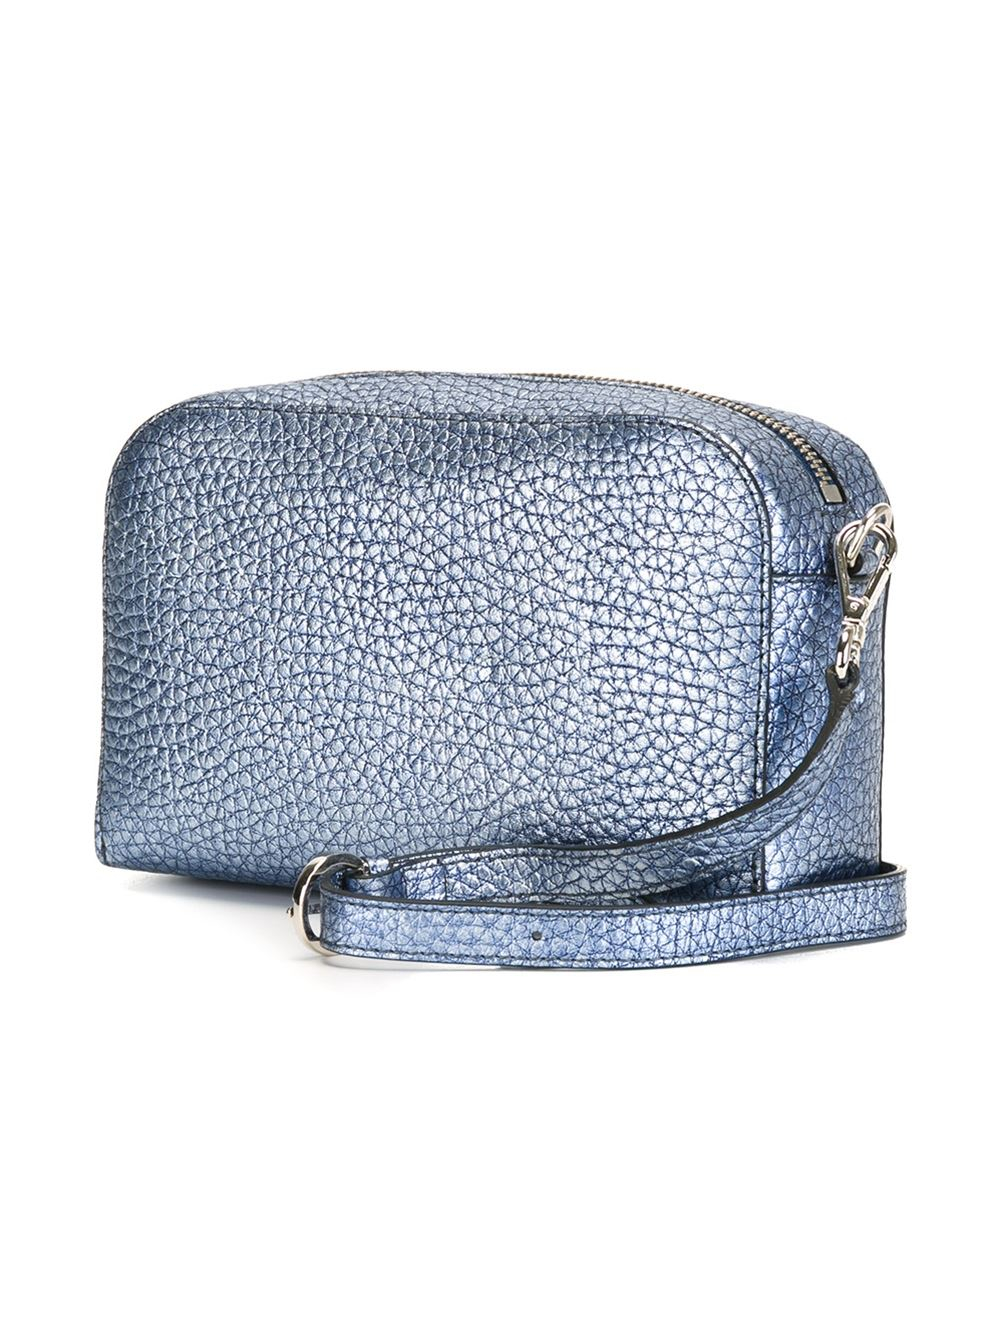 Orciani Leather Textured Zip Up Cross Body Bag in Blue